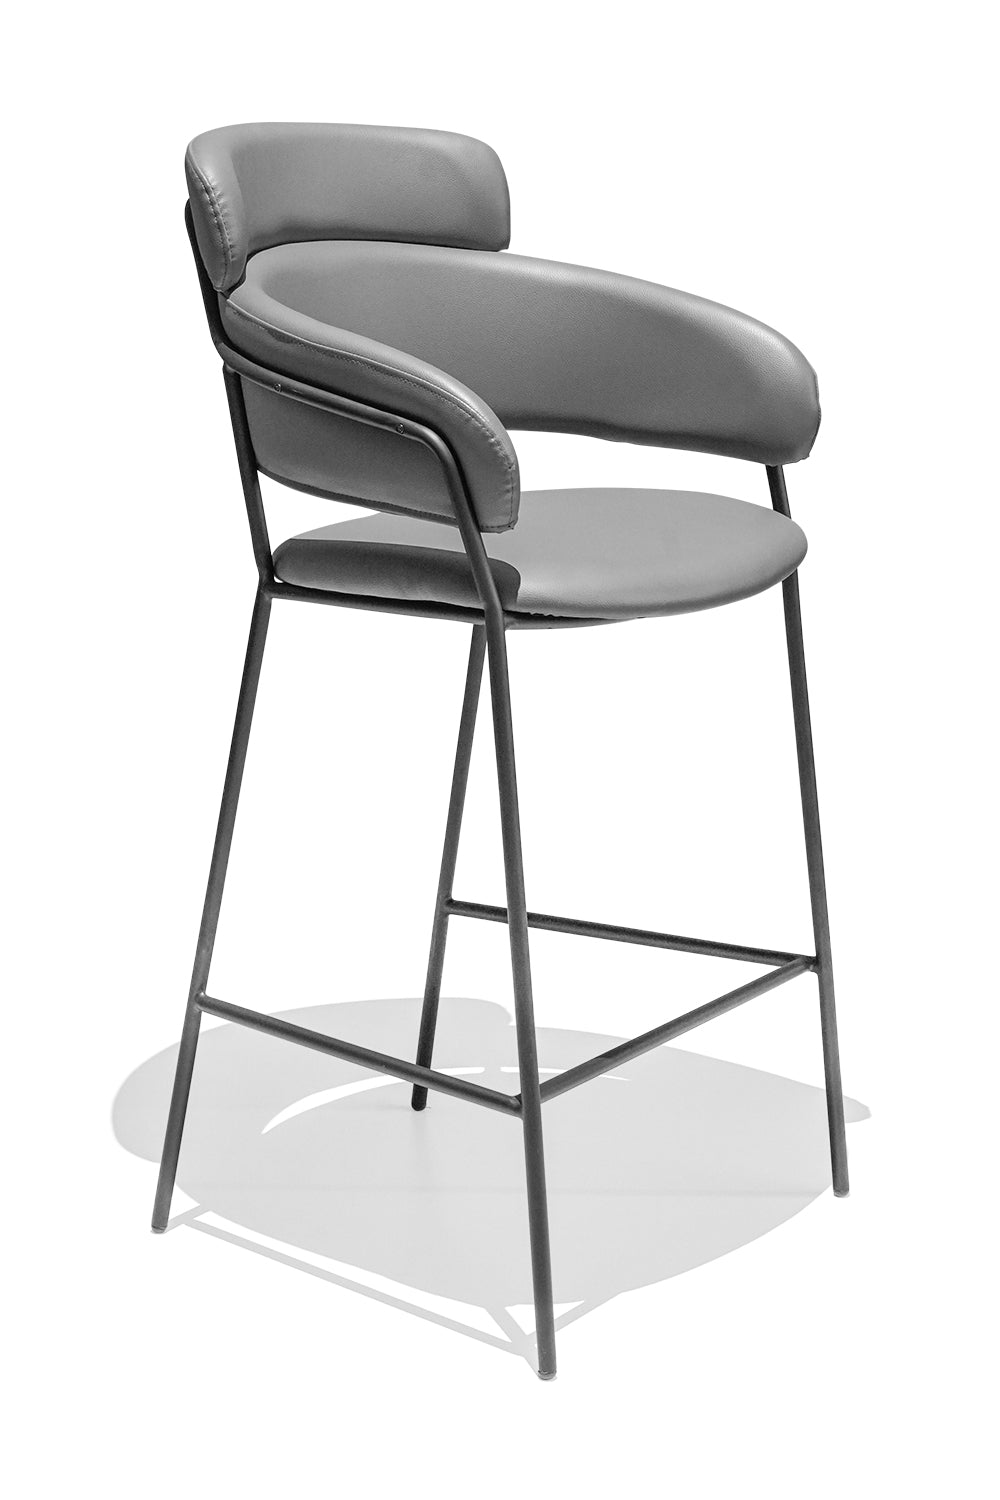 COMO kitchen stool